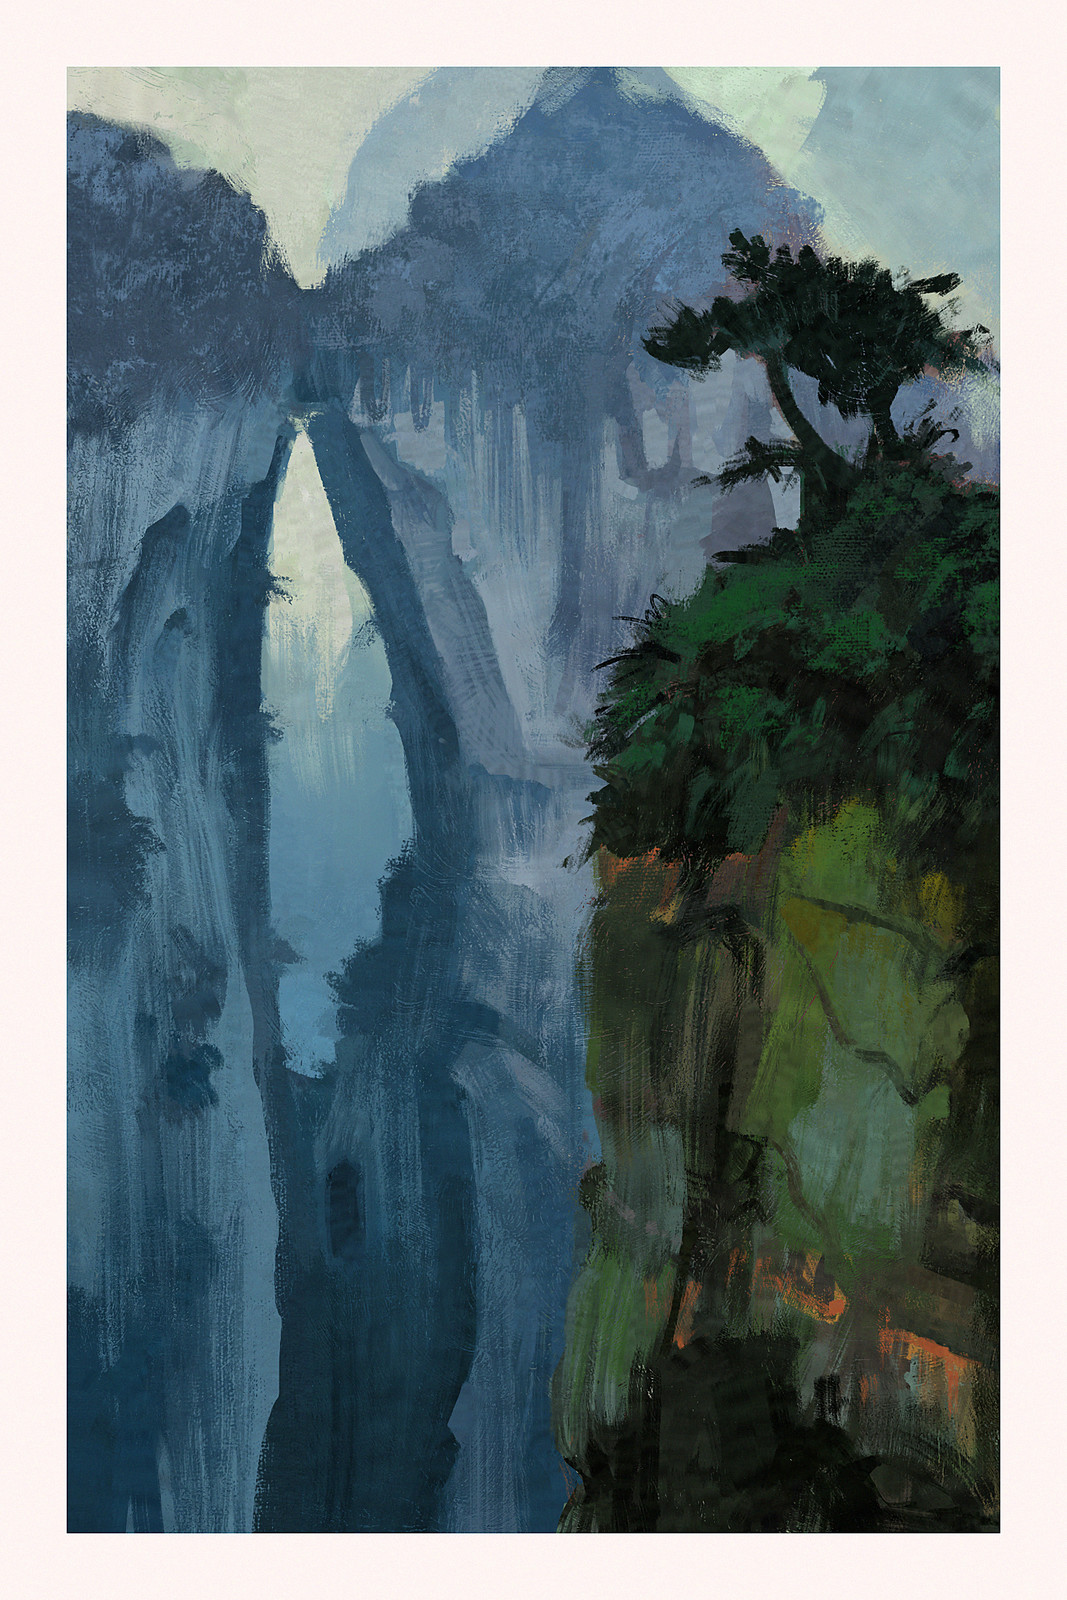 Landscape painting, from image ref.